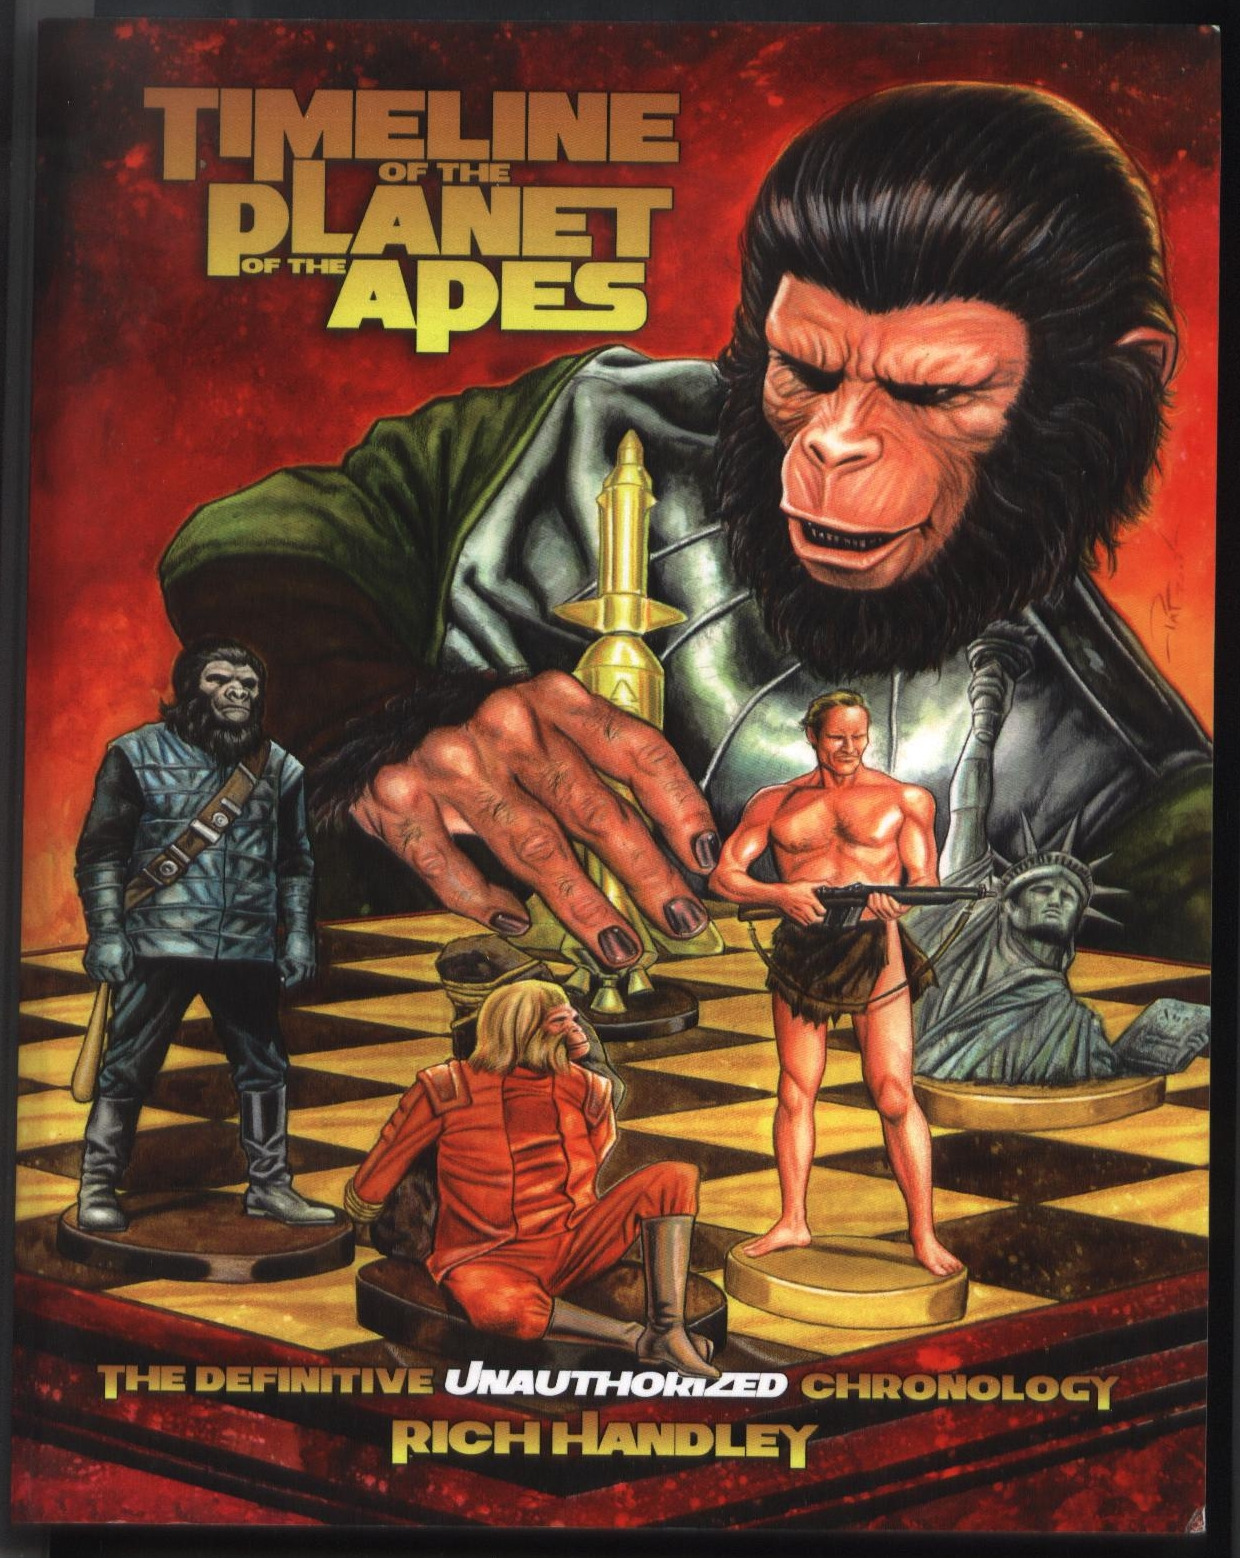 Timeline of the Planet of the Apes:The Definitive Chronology-R. Handley(anglick)